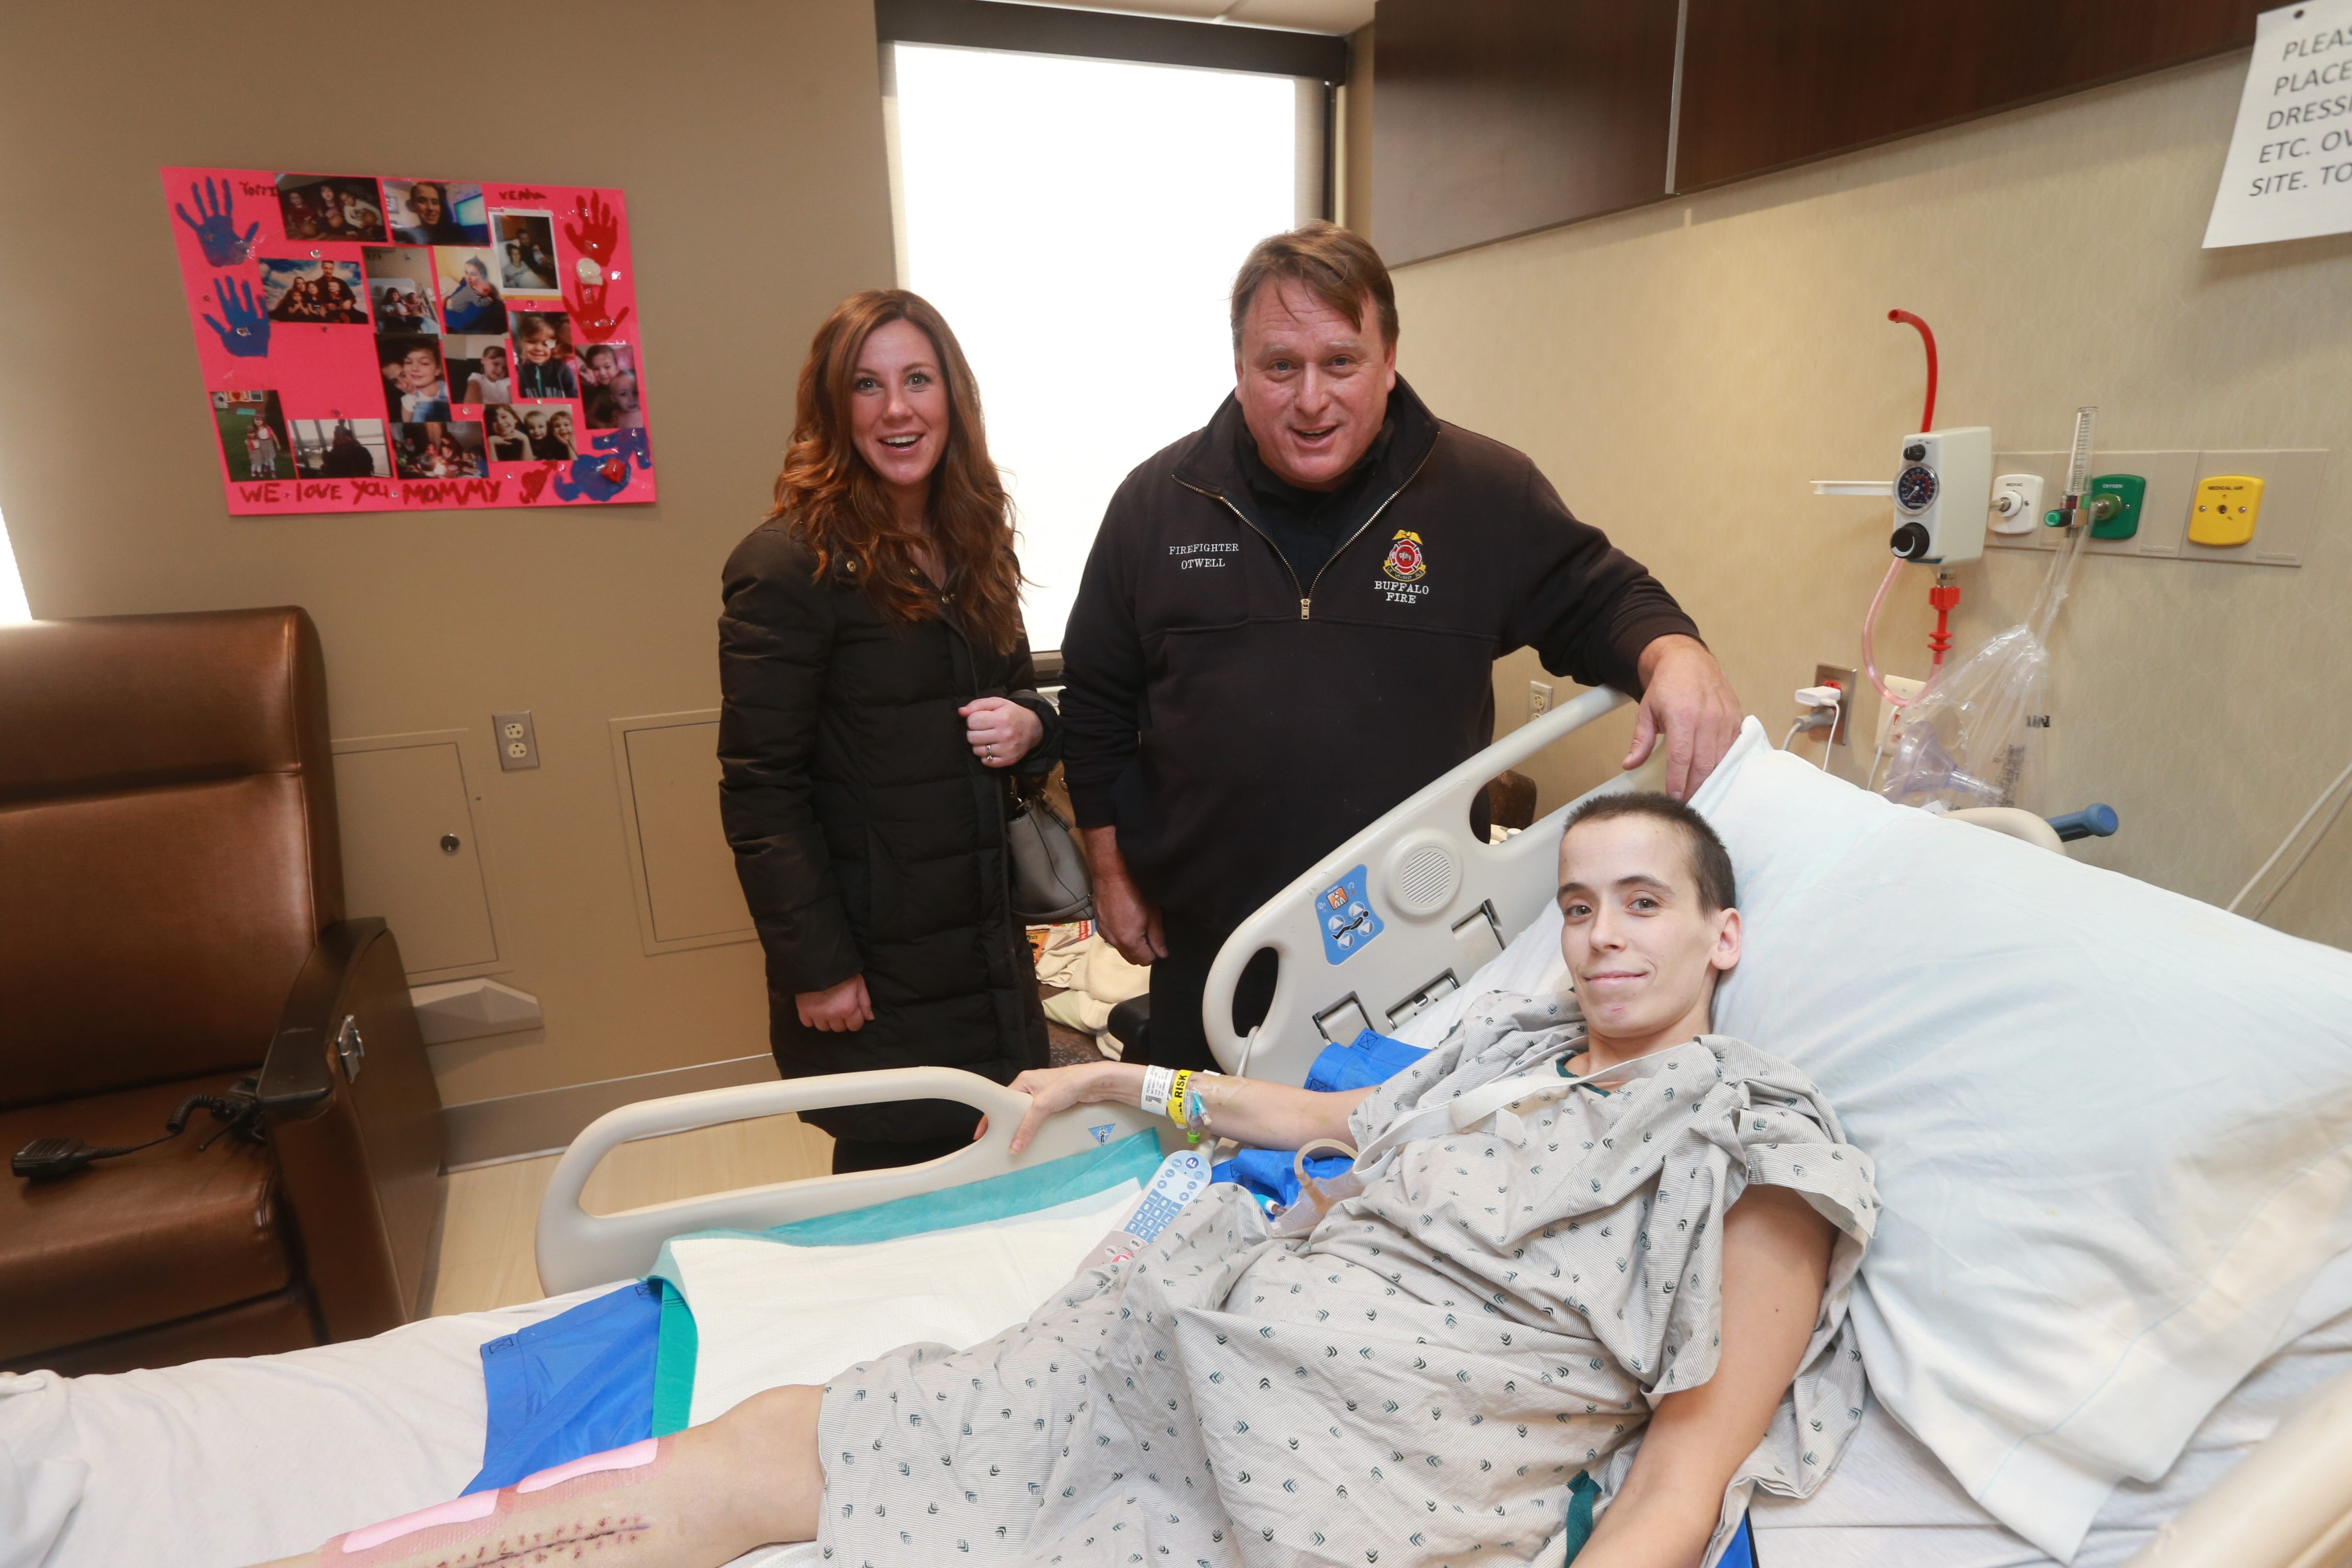 Seven weeks ago, Elizabeth Manna and Lt. James Otwell helped transport a severely injured Jessica Powers, 29, to the hospital.